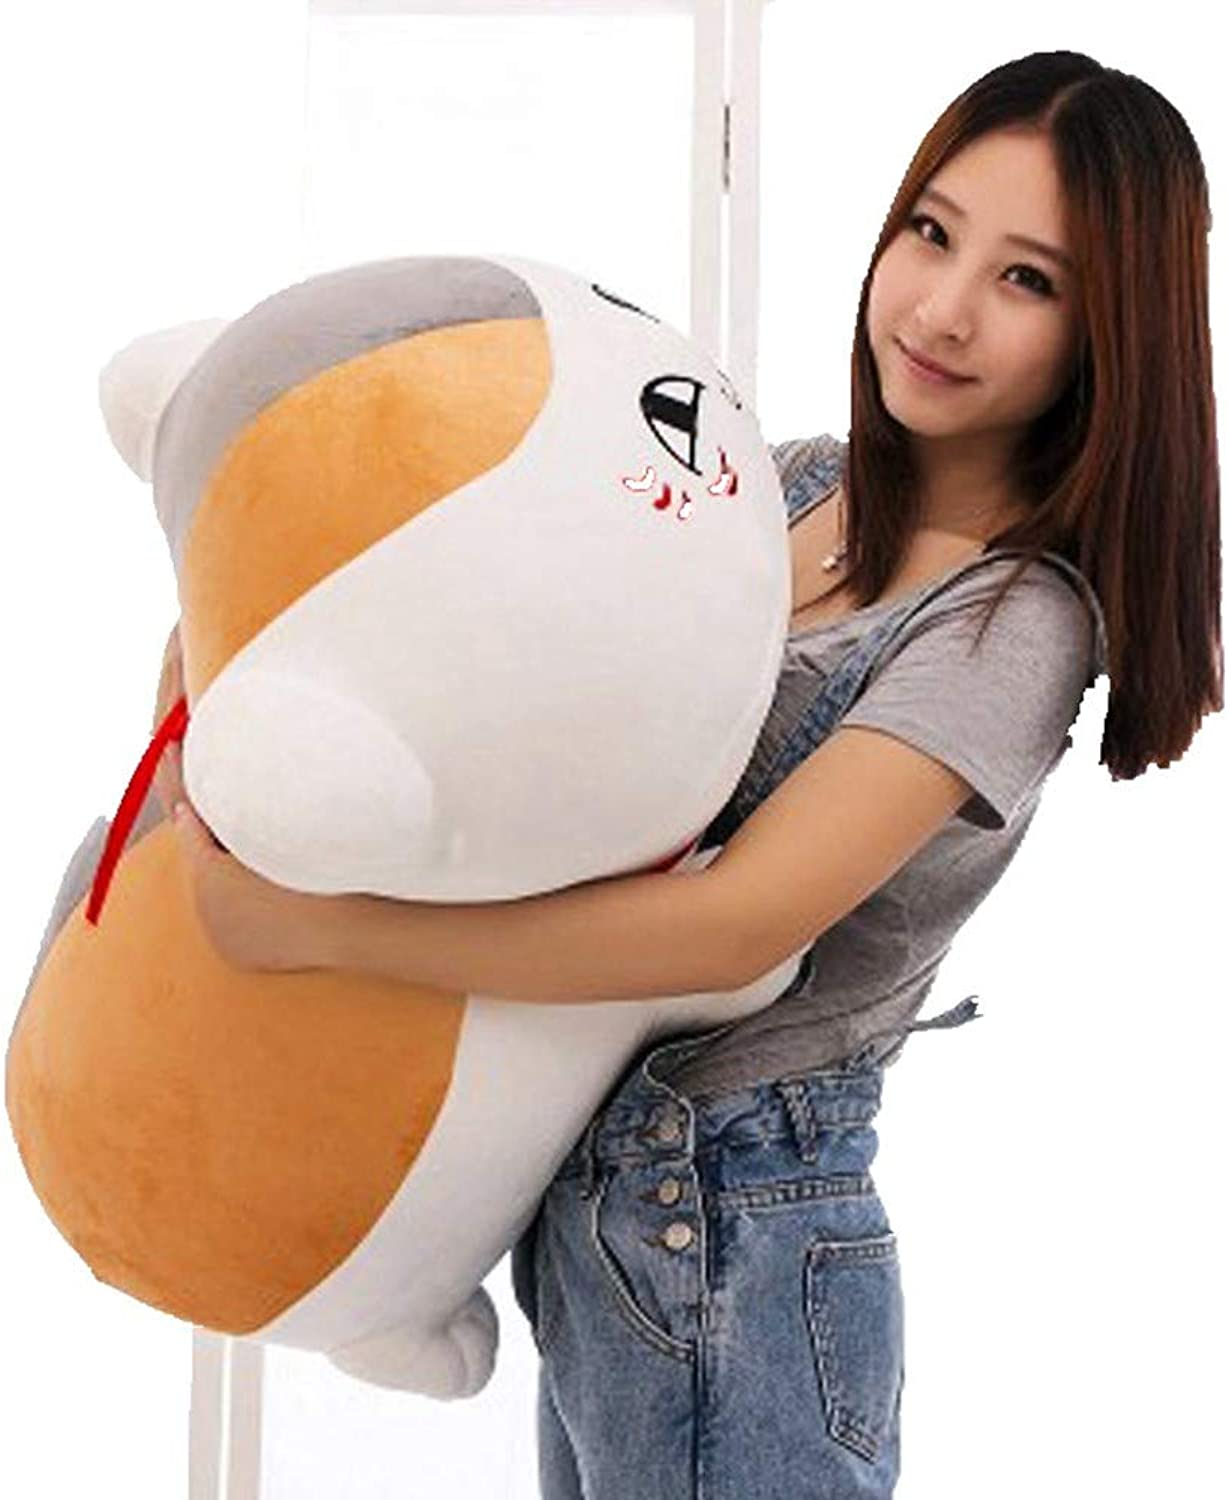 LAIBAERDAN Plush Doll Cat Plush Doll Girl Pillow Pillow Pillow 203050607080Cm, 70Cm